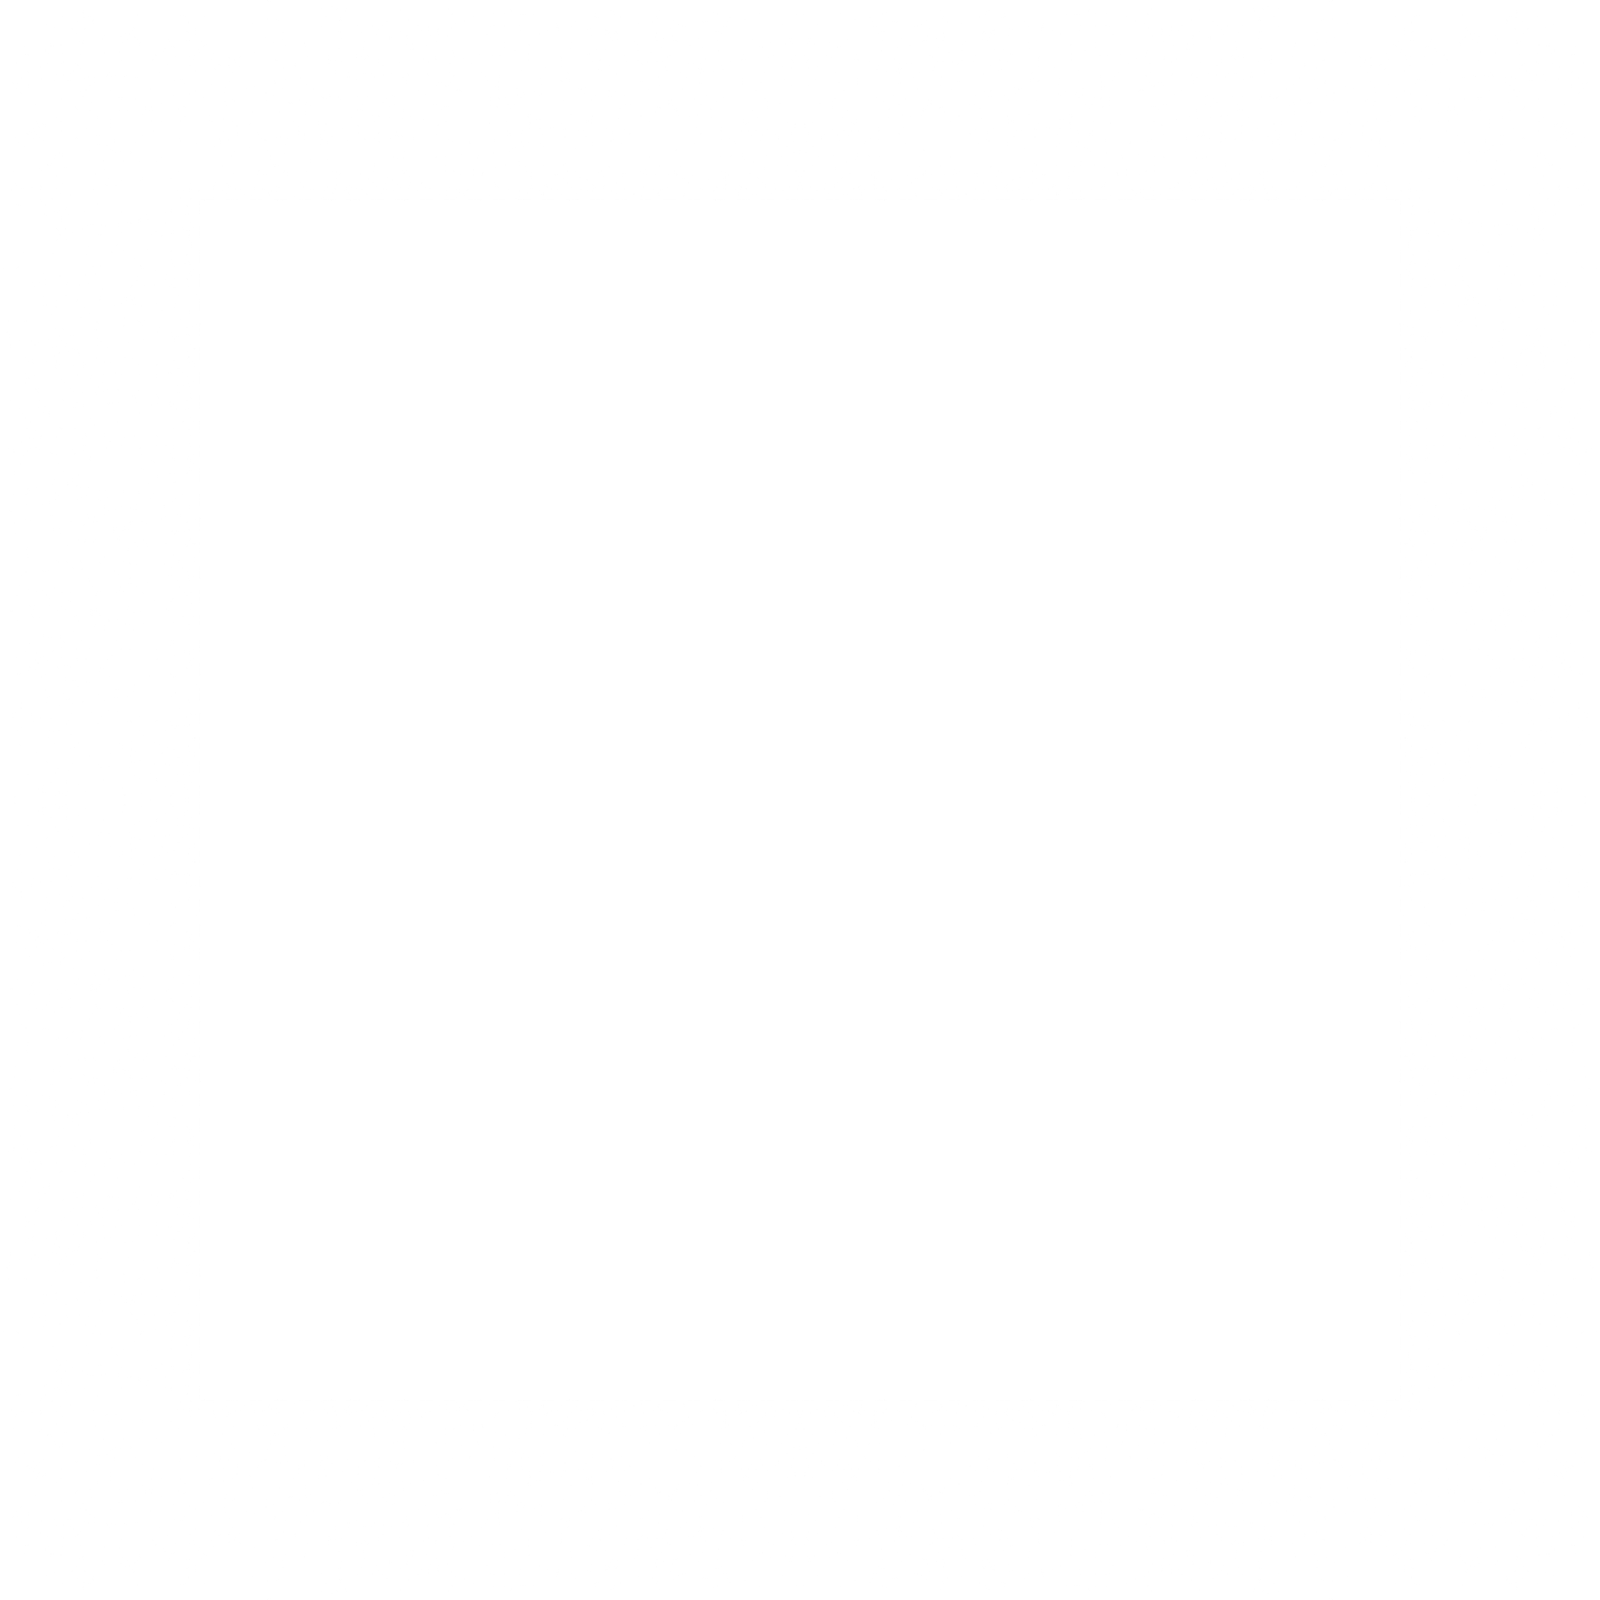 Lace Frame Png | www.imgkid.com - The Image Kid Has It!